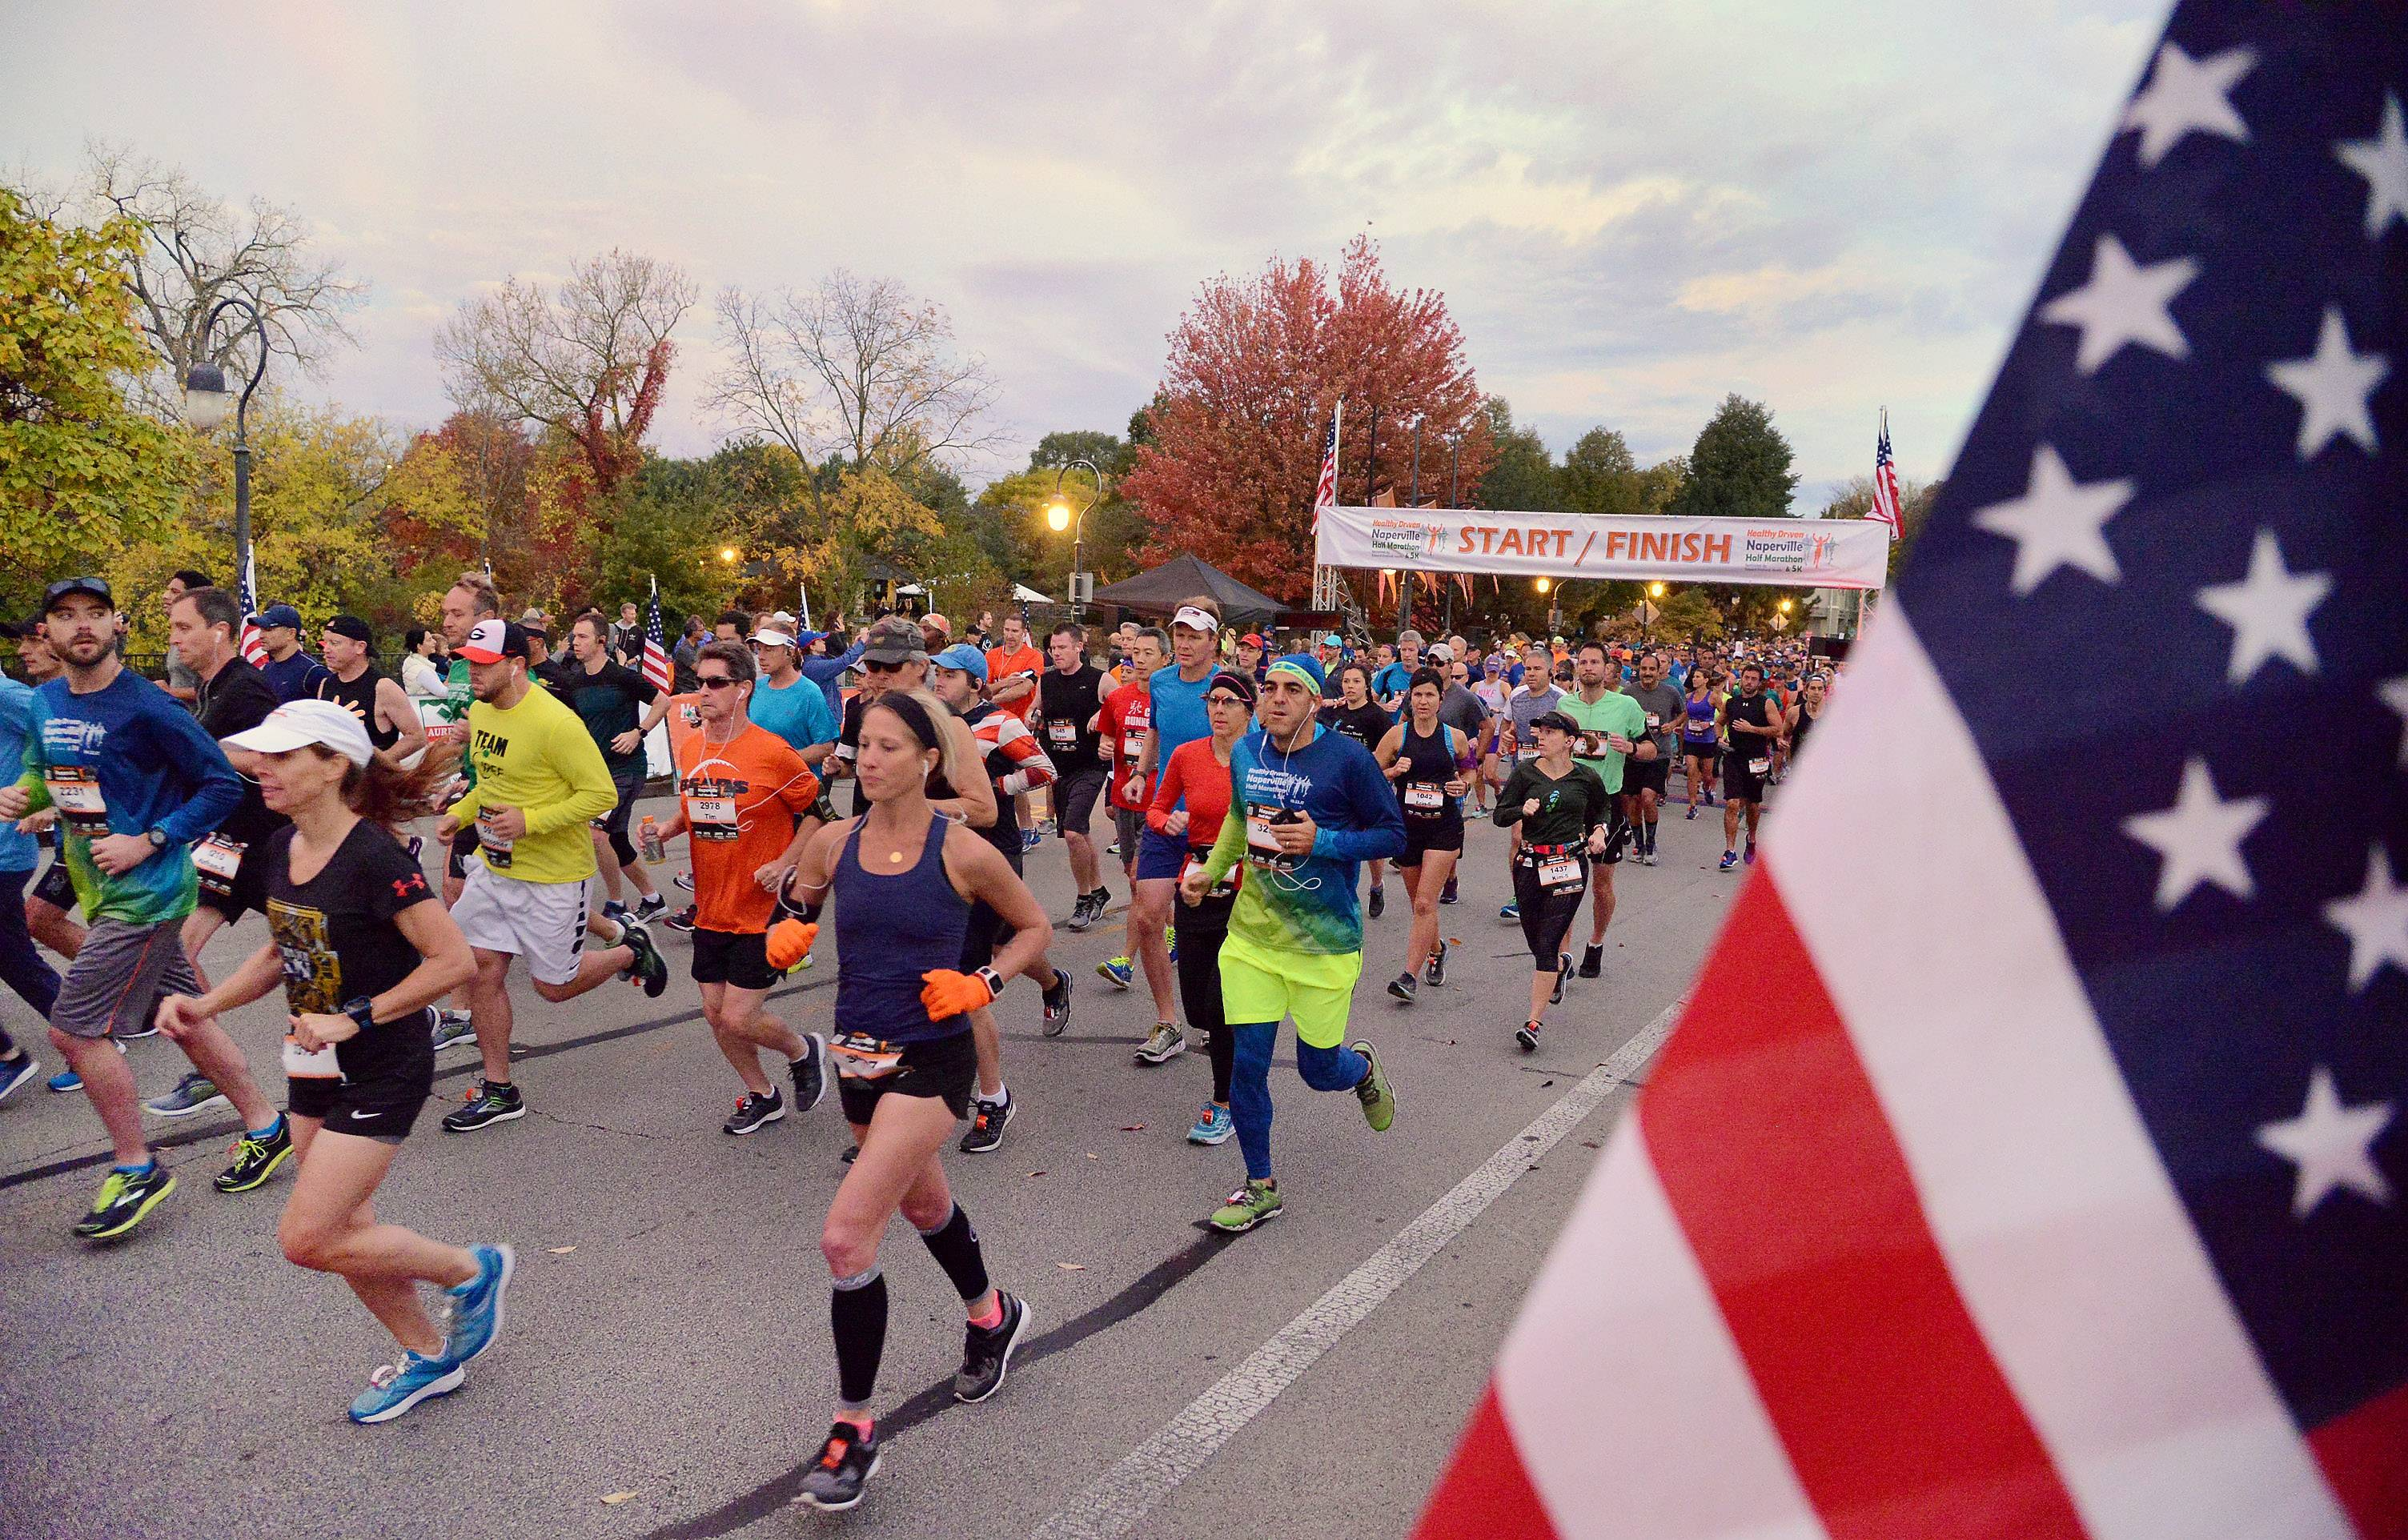 Less distance, same enthusiasm at Naperville half marathon